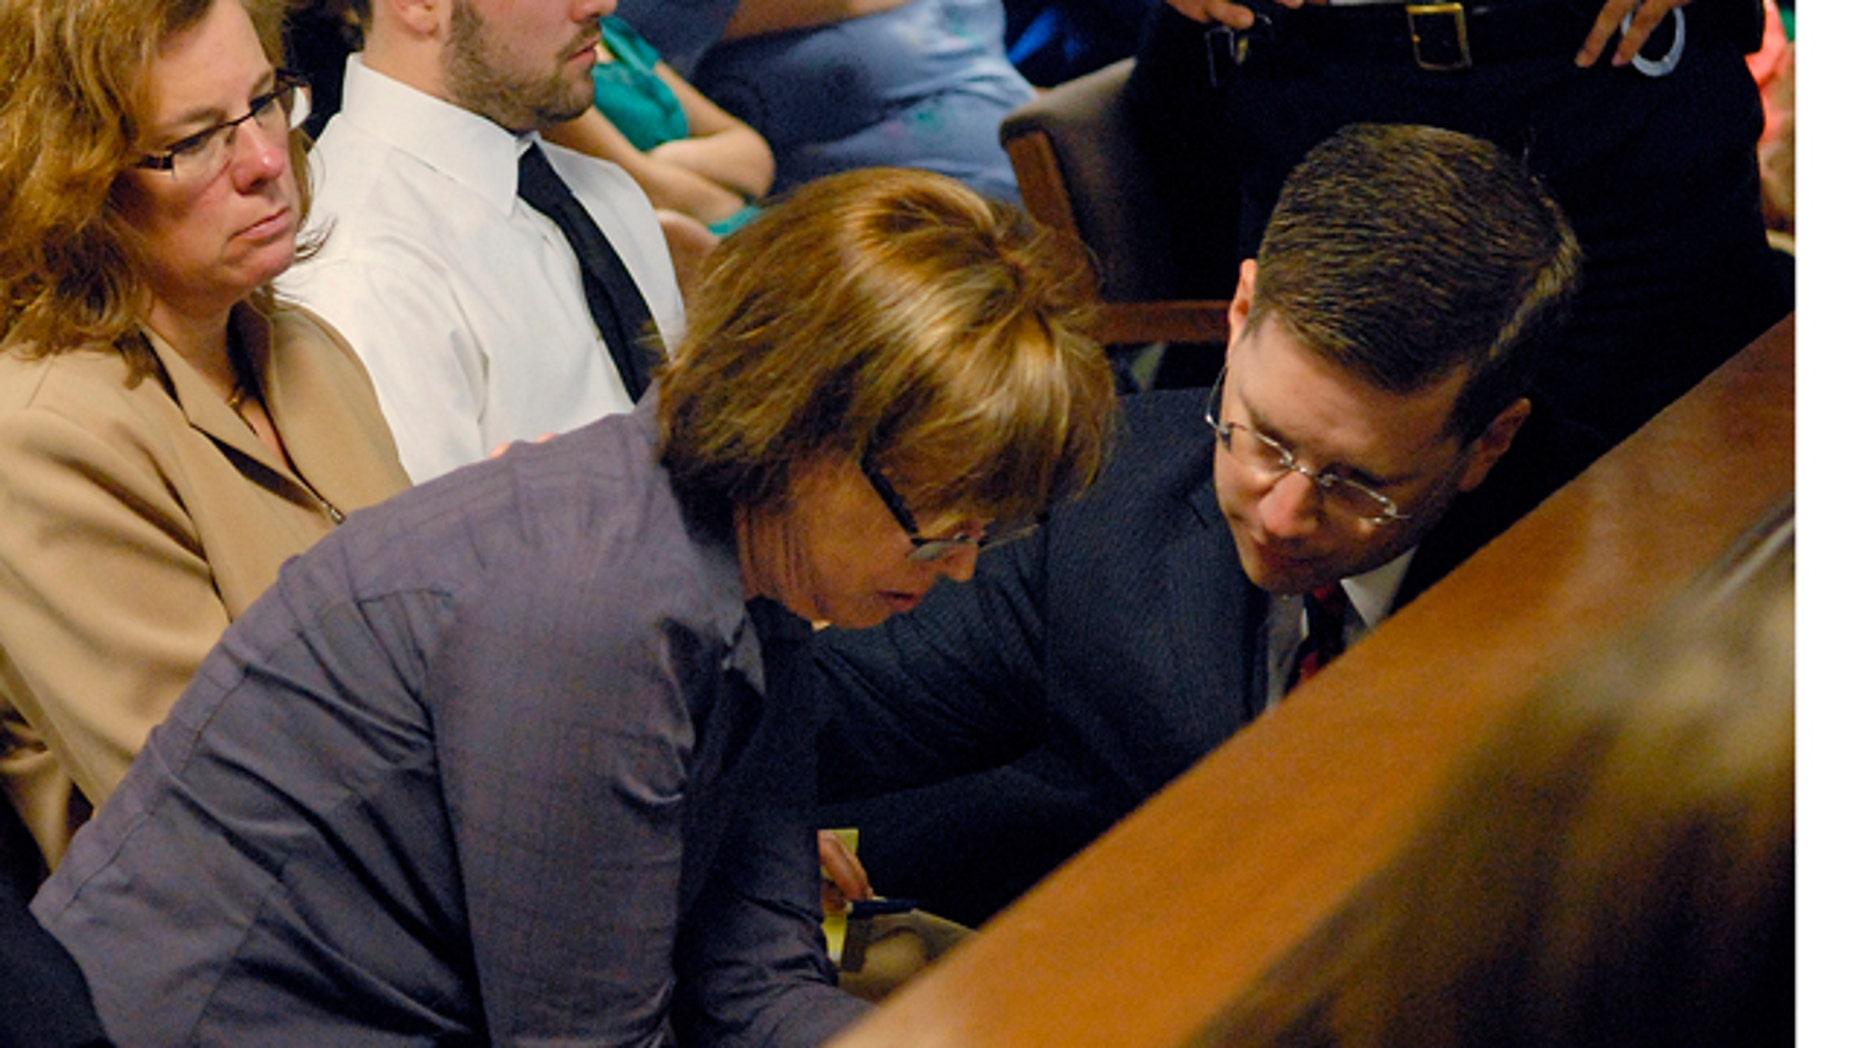 May 4: Anne O'Brien, mother of Phoebe Prince, talks with First Assistant District Attorney Steven Gagne during Kayla Narey's hearing where she admitted to sufficient facts of criminal harassment in Franklin - Hampshire Juvenile Court in Northampton, Mass.